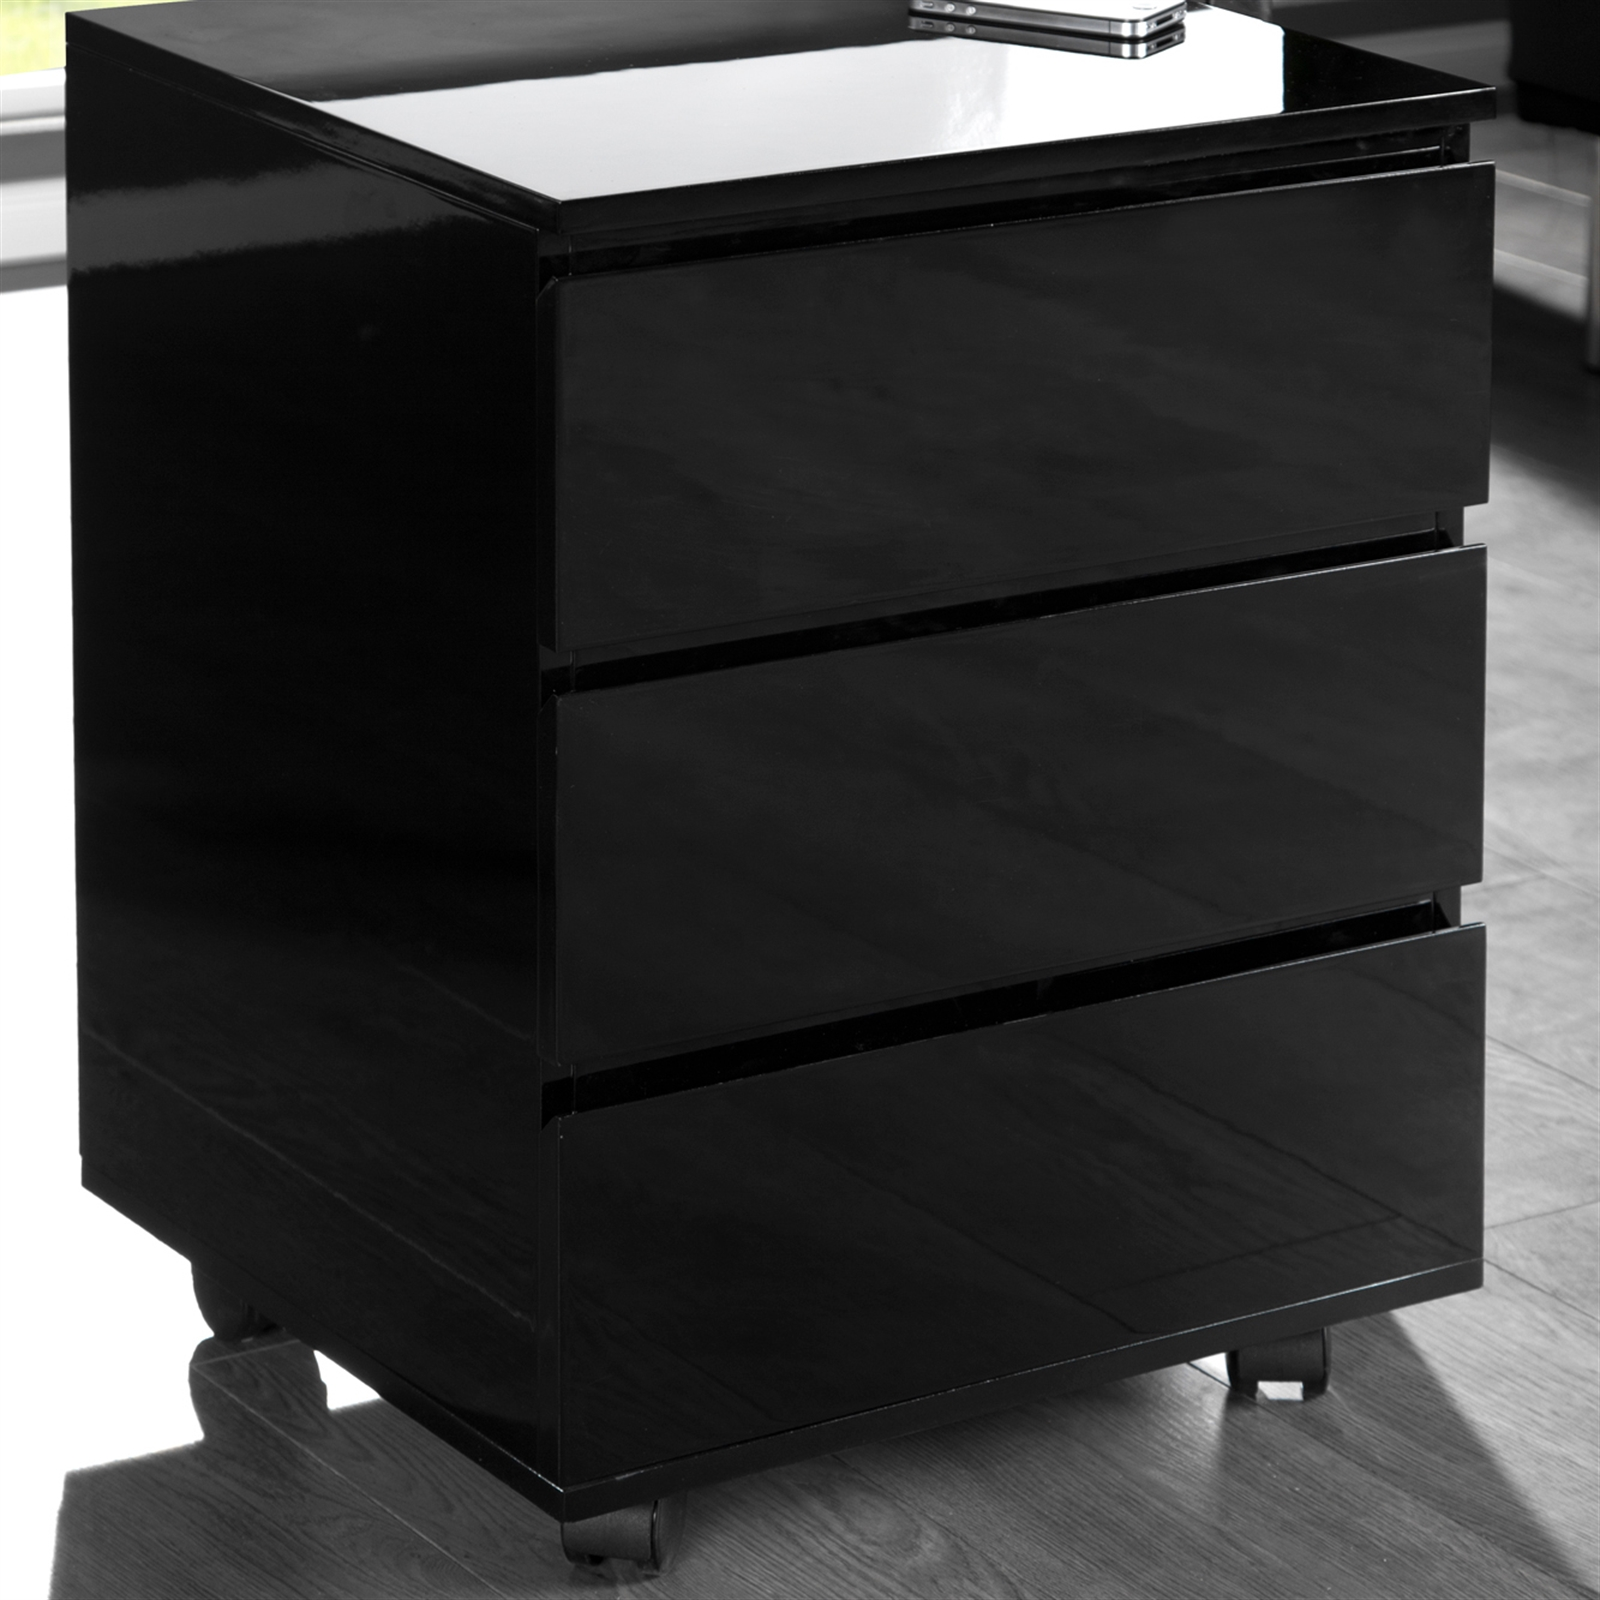 b ro rollcontainer move schreibtisch regal aus holz hochglanz schwarz ebay. Black Bedroom Furniture Sets. Home Design Ideas